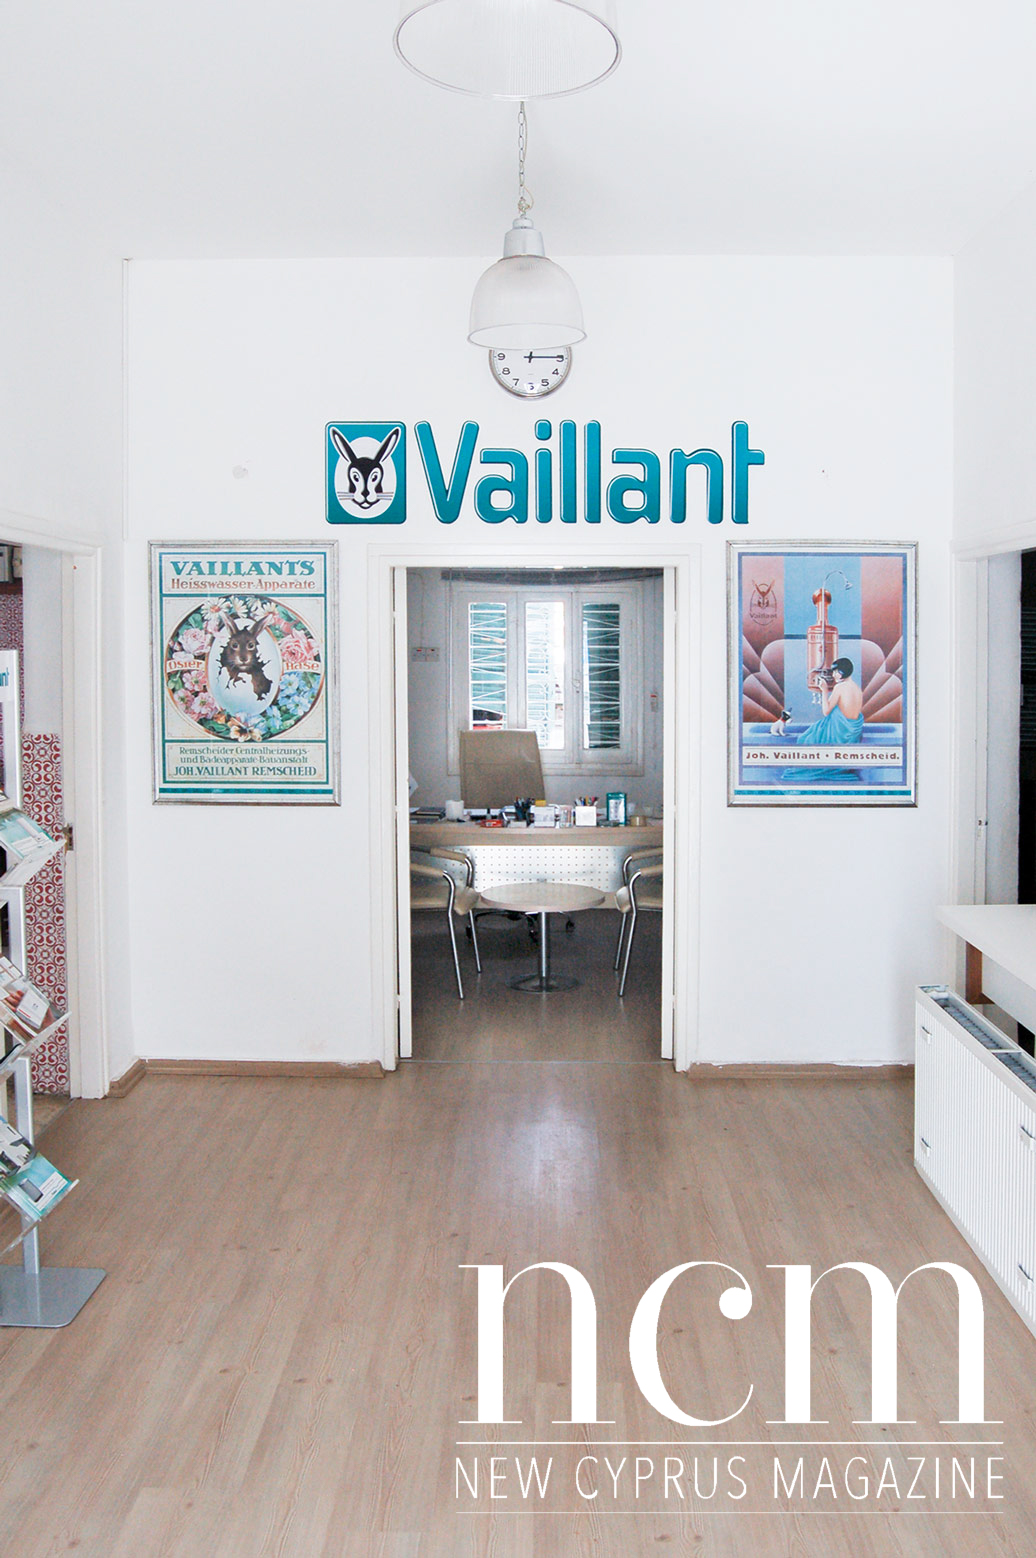 Vaillant in Nicosia sells heating systems